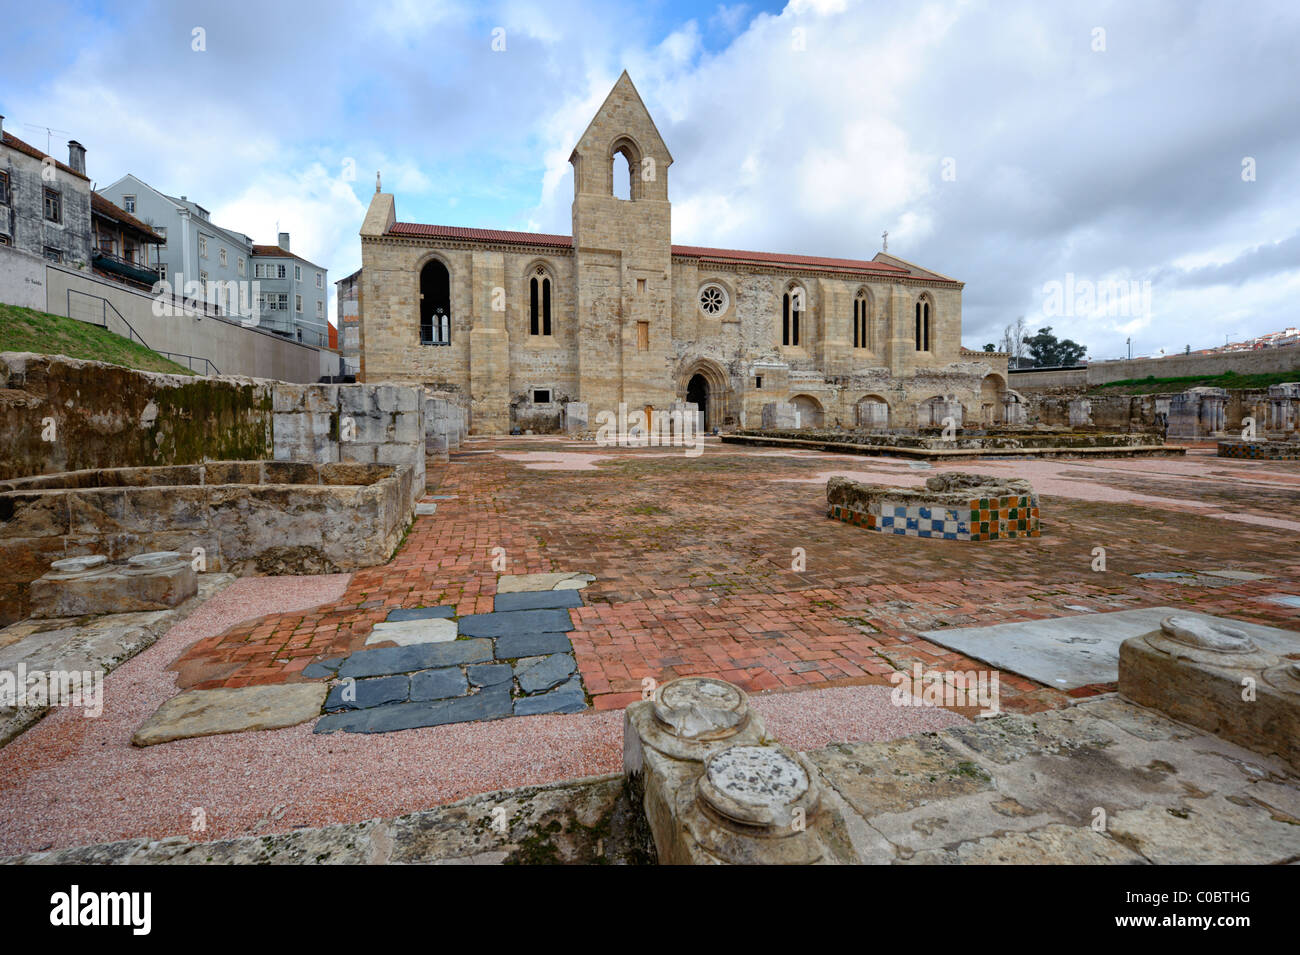 Santa Clara-a-Velha monastery in Coimbra, Portugal, Europe Stock Photo